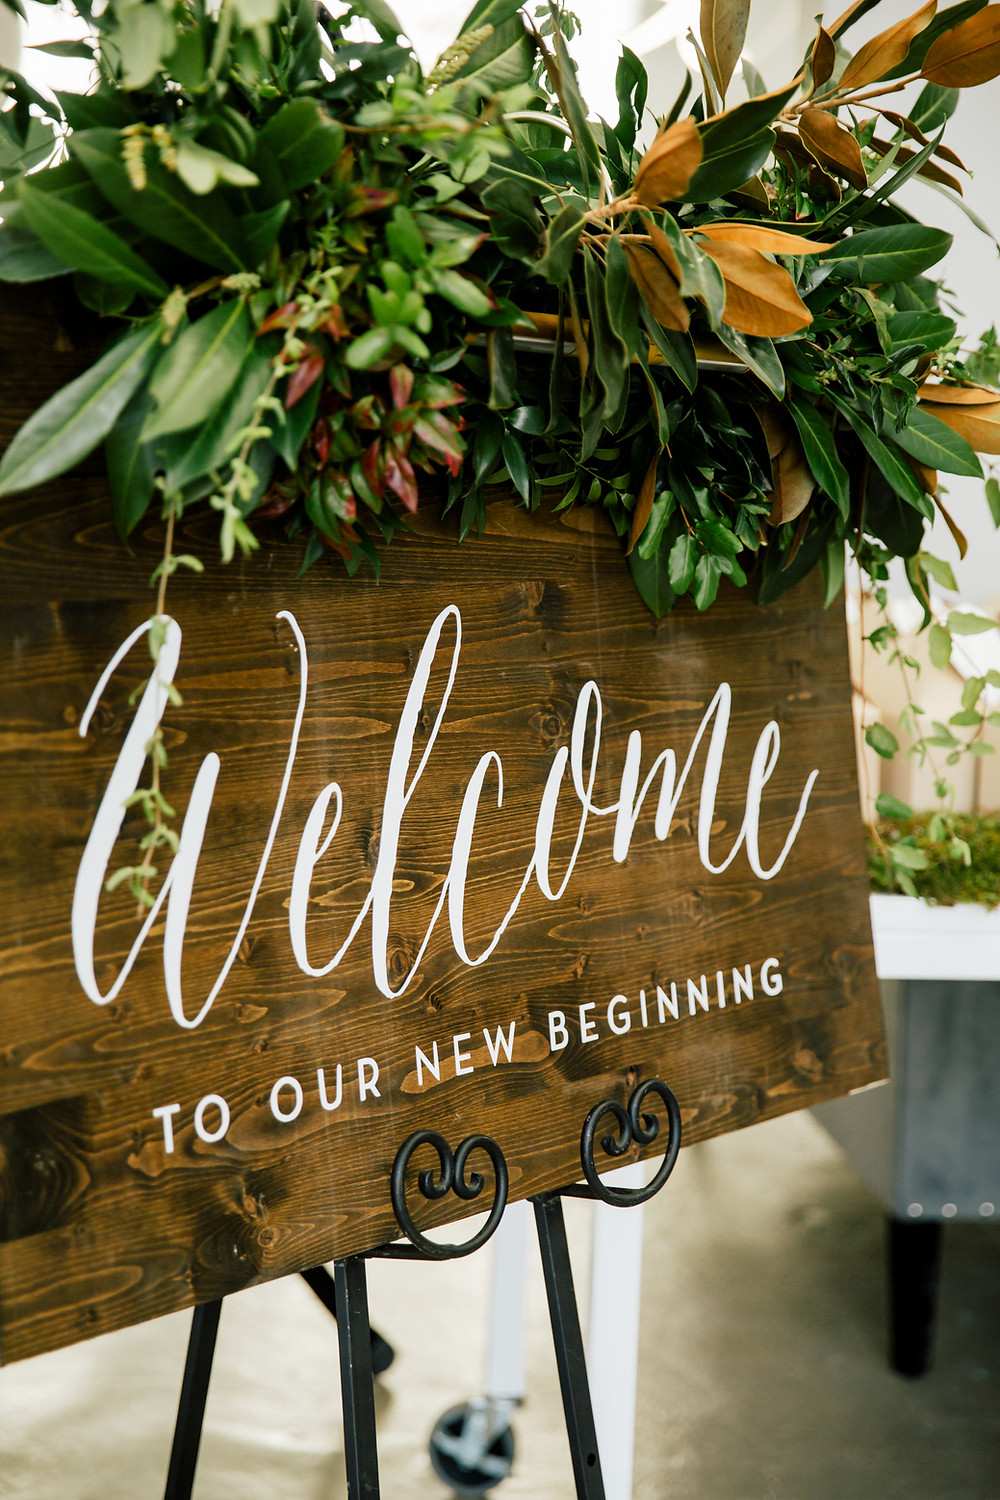 Handlettered welcome sign toppped with greenery for Engaged Wedding Studio Launch Party